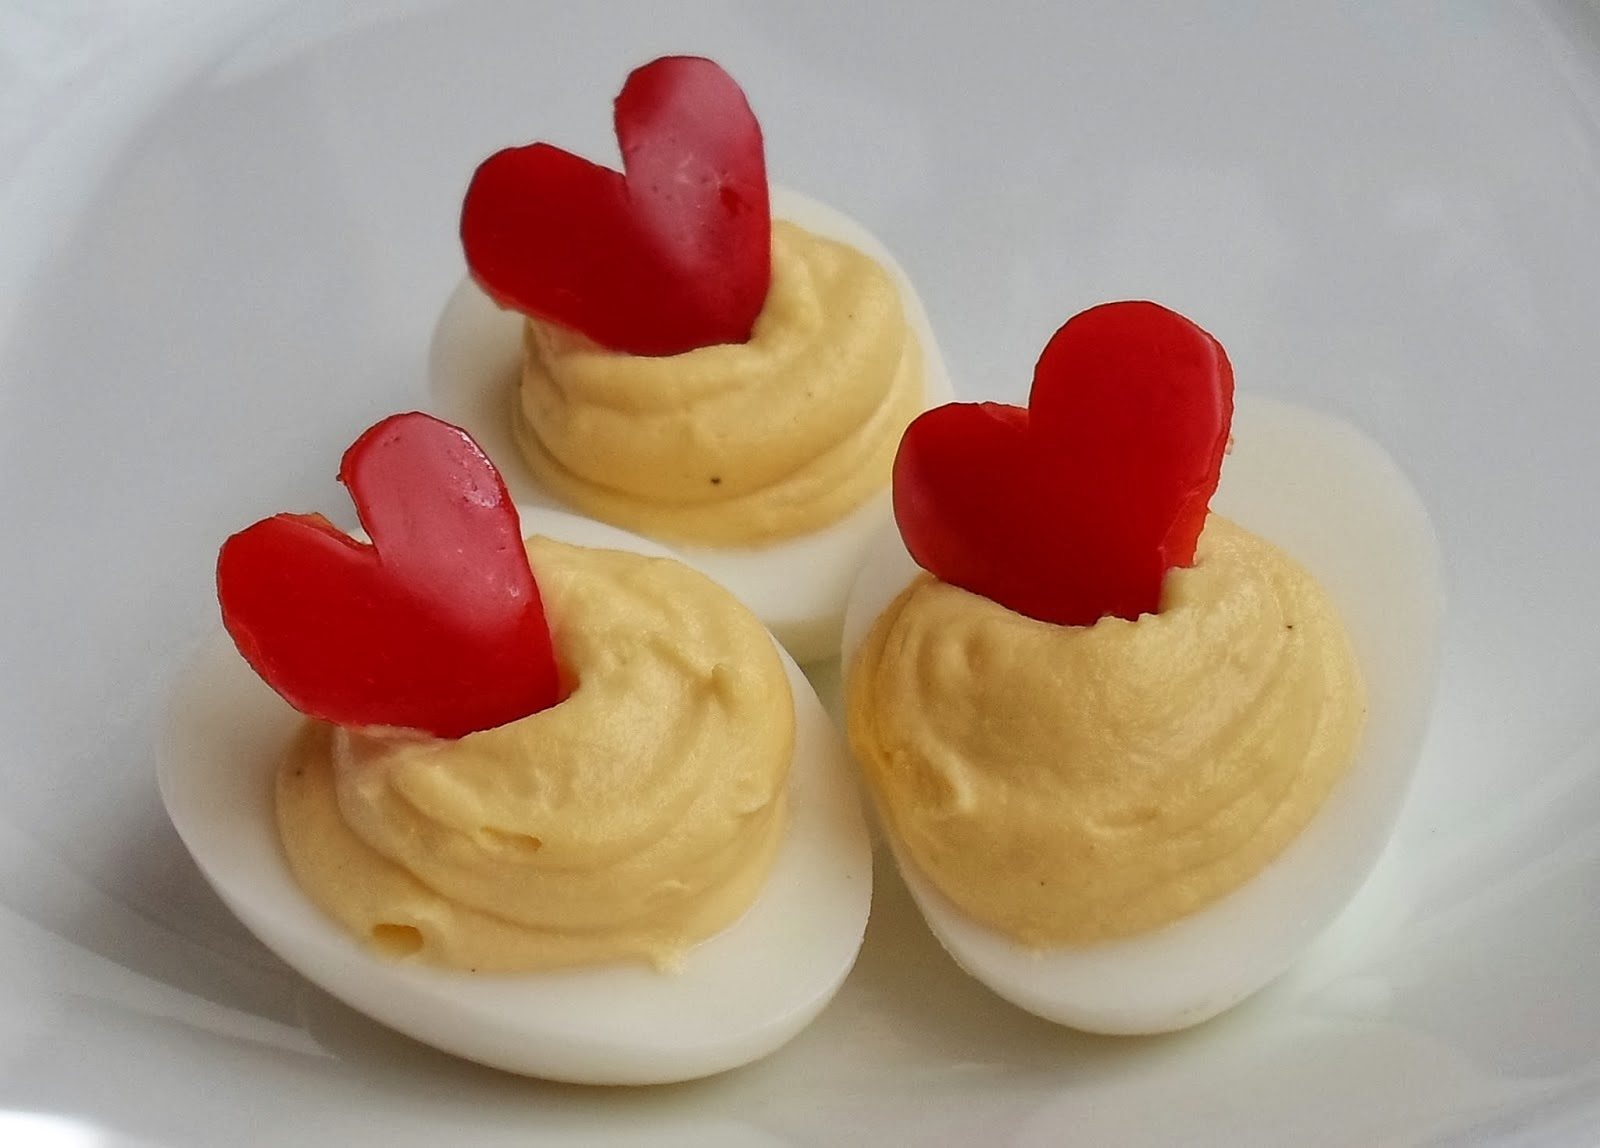 http://happierthanapiginmud.blogspot.com/2014/01/red-bell-pepper-heart-deviled-eggs.html